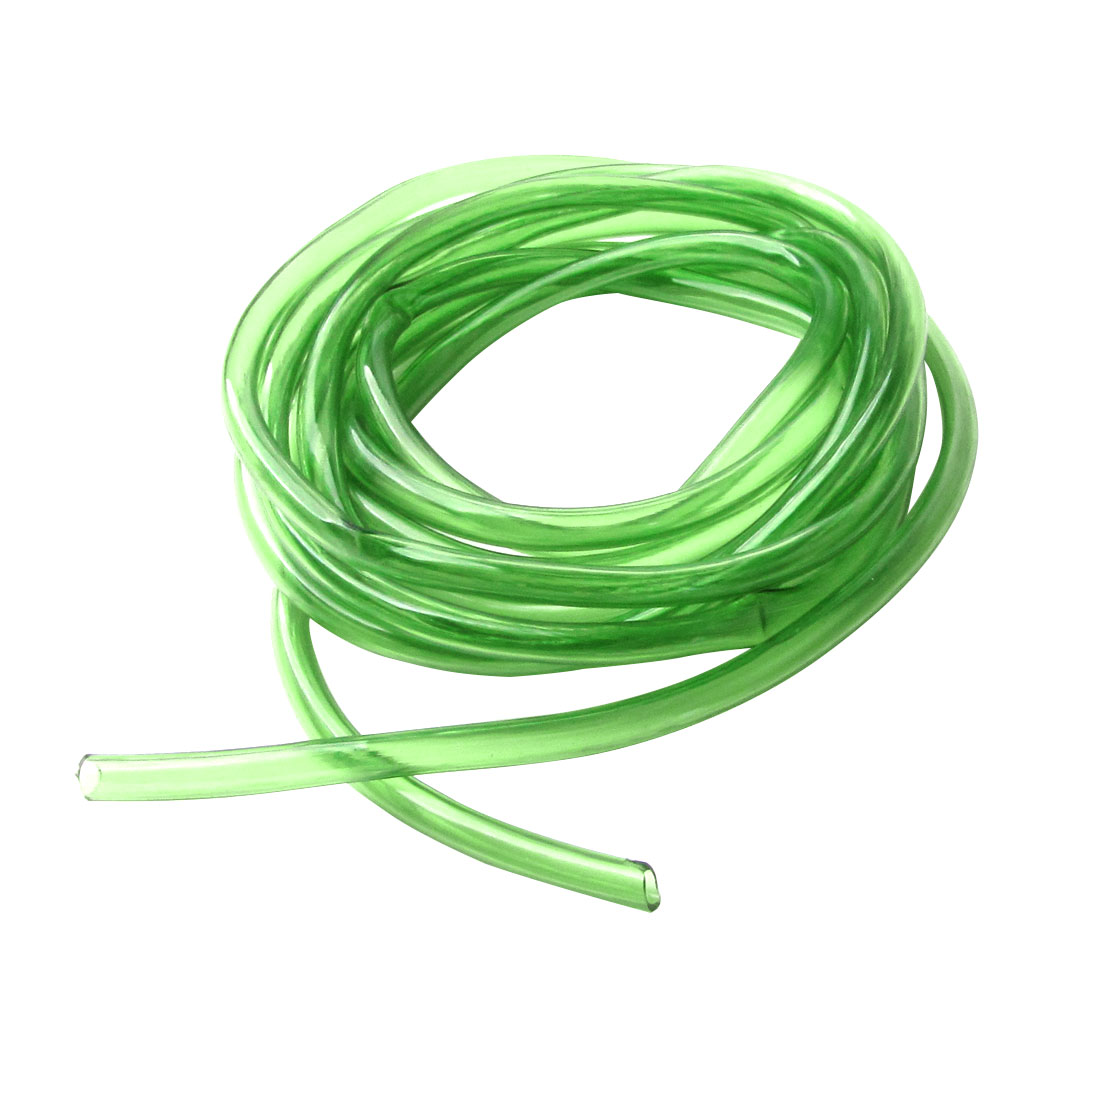 Fish Tank 2.5M Long Clear Green Soft Plastic Oxygen Balance Hose Pipe Tube